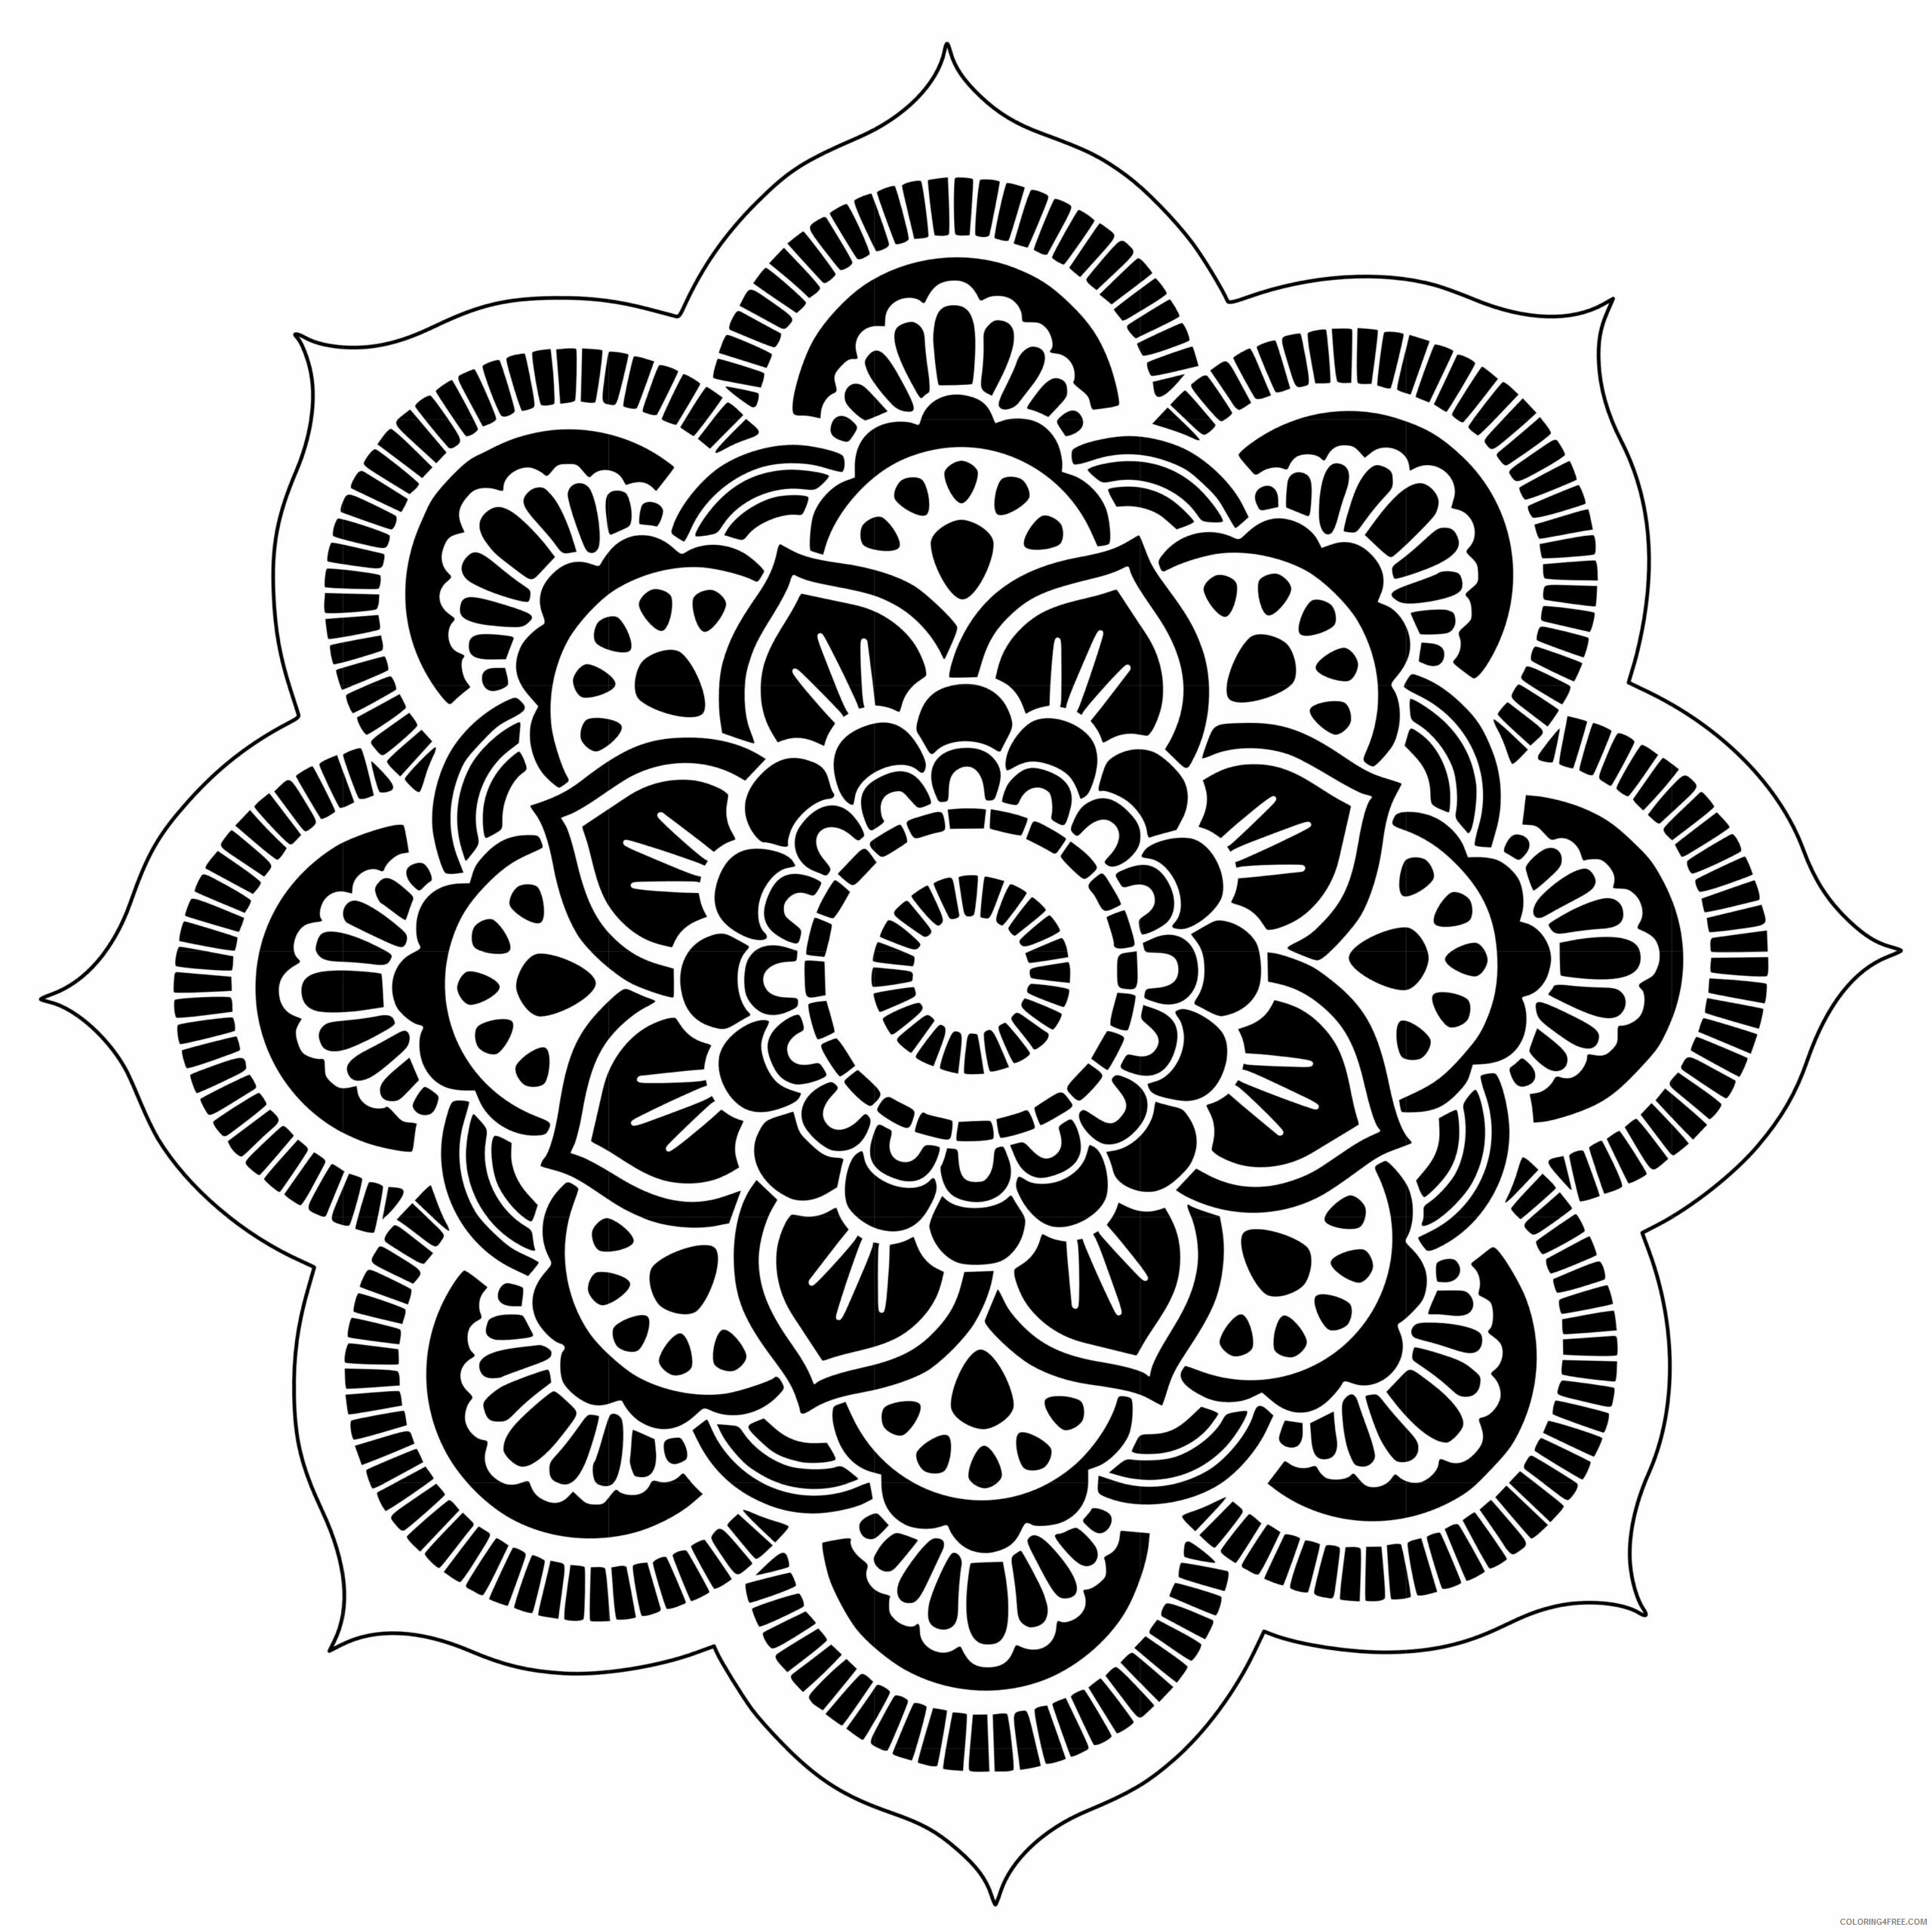 Flower Mandala Coloring Pages Adult Flower Mandala for Adults Printable 2020 396 Coloring4free